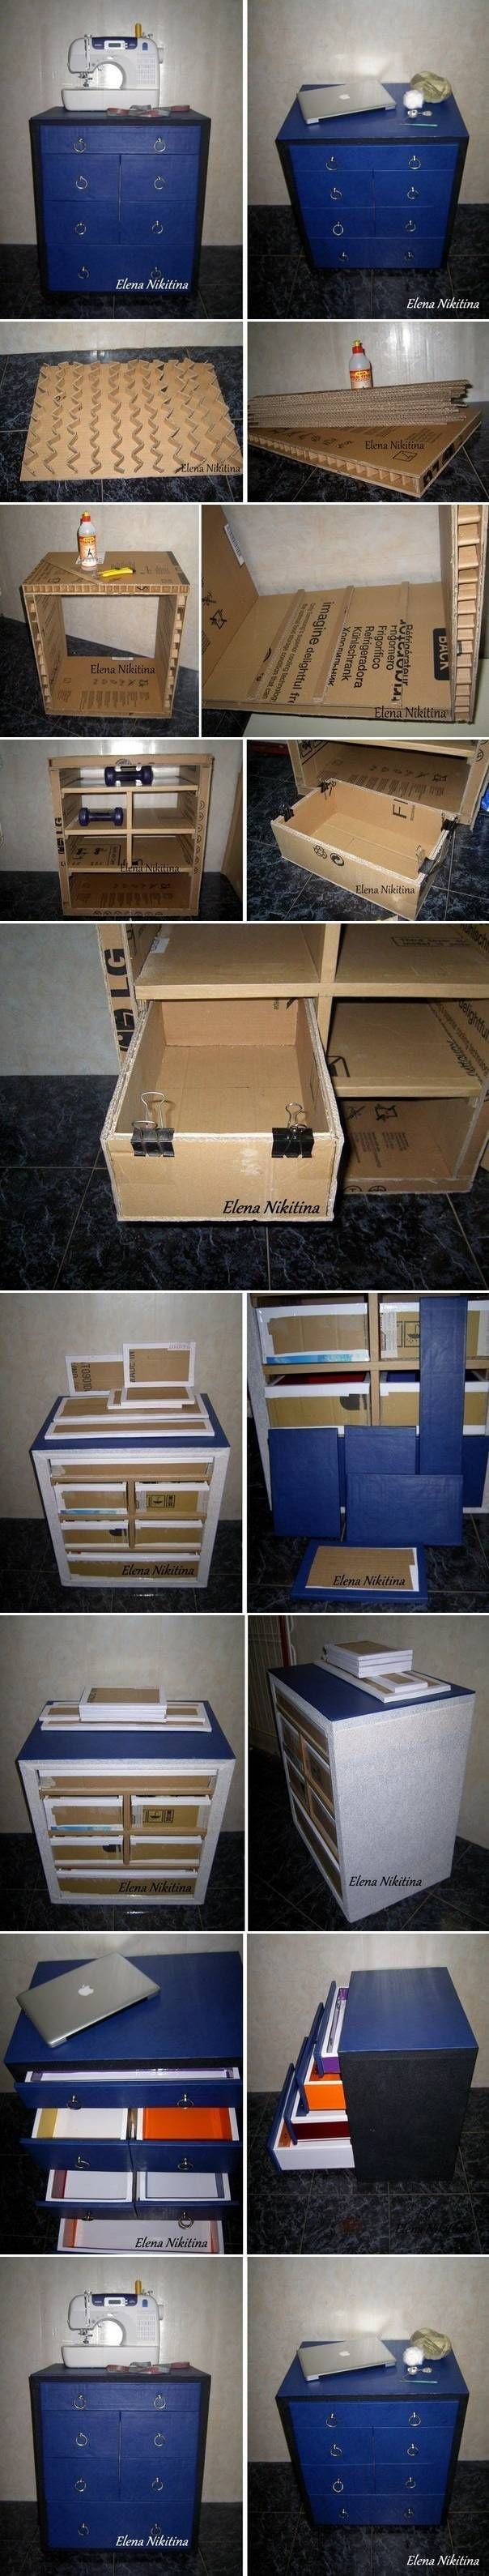 DIY Cardboard Chest with Drawers